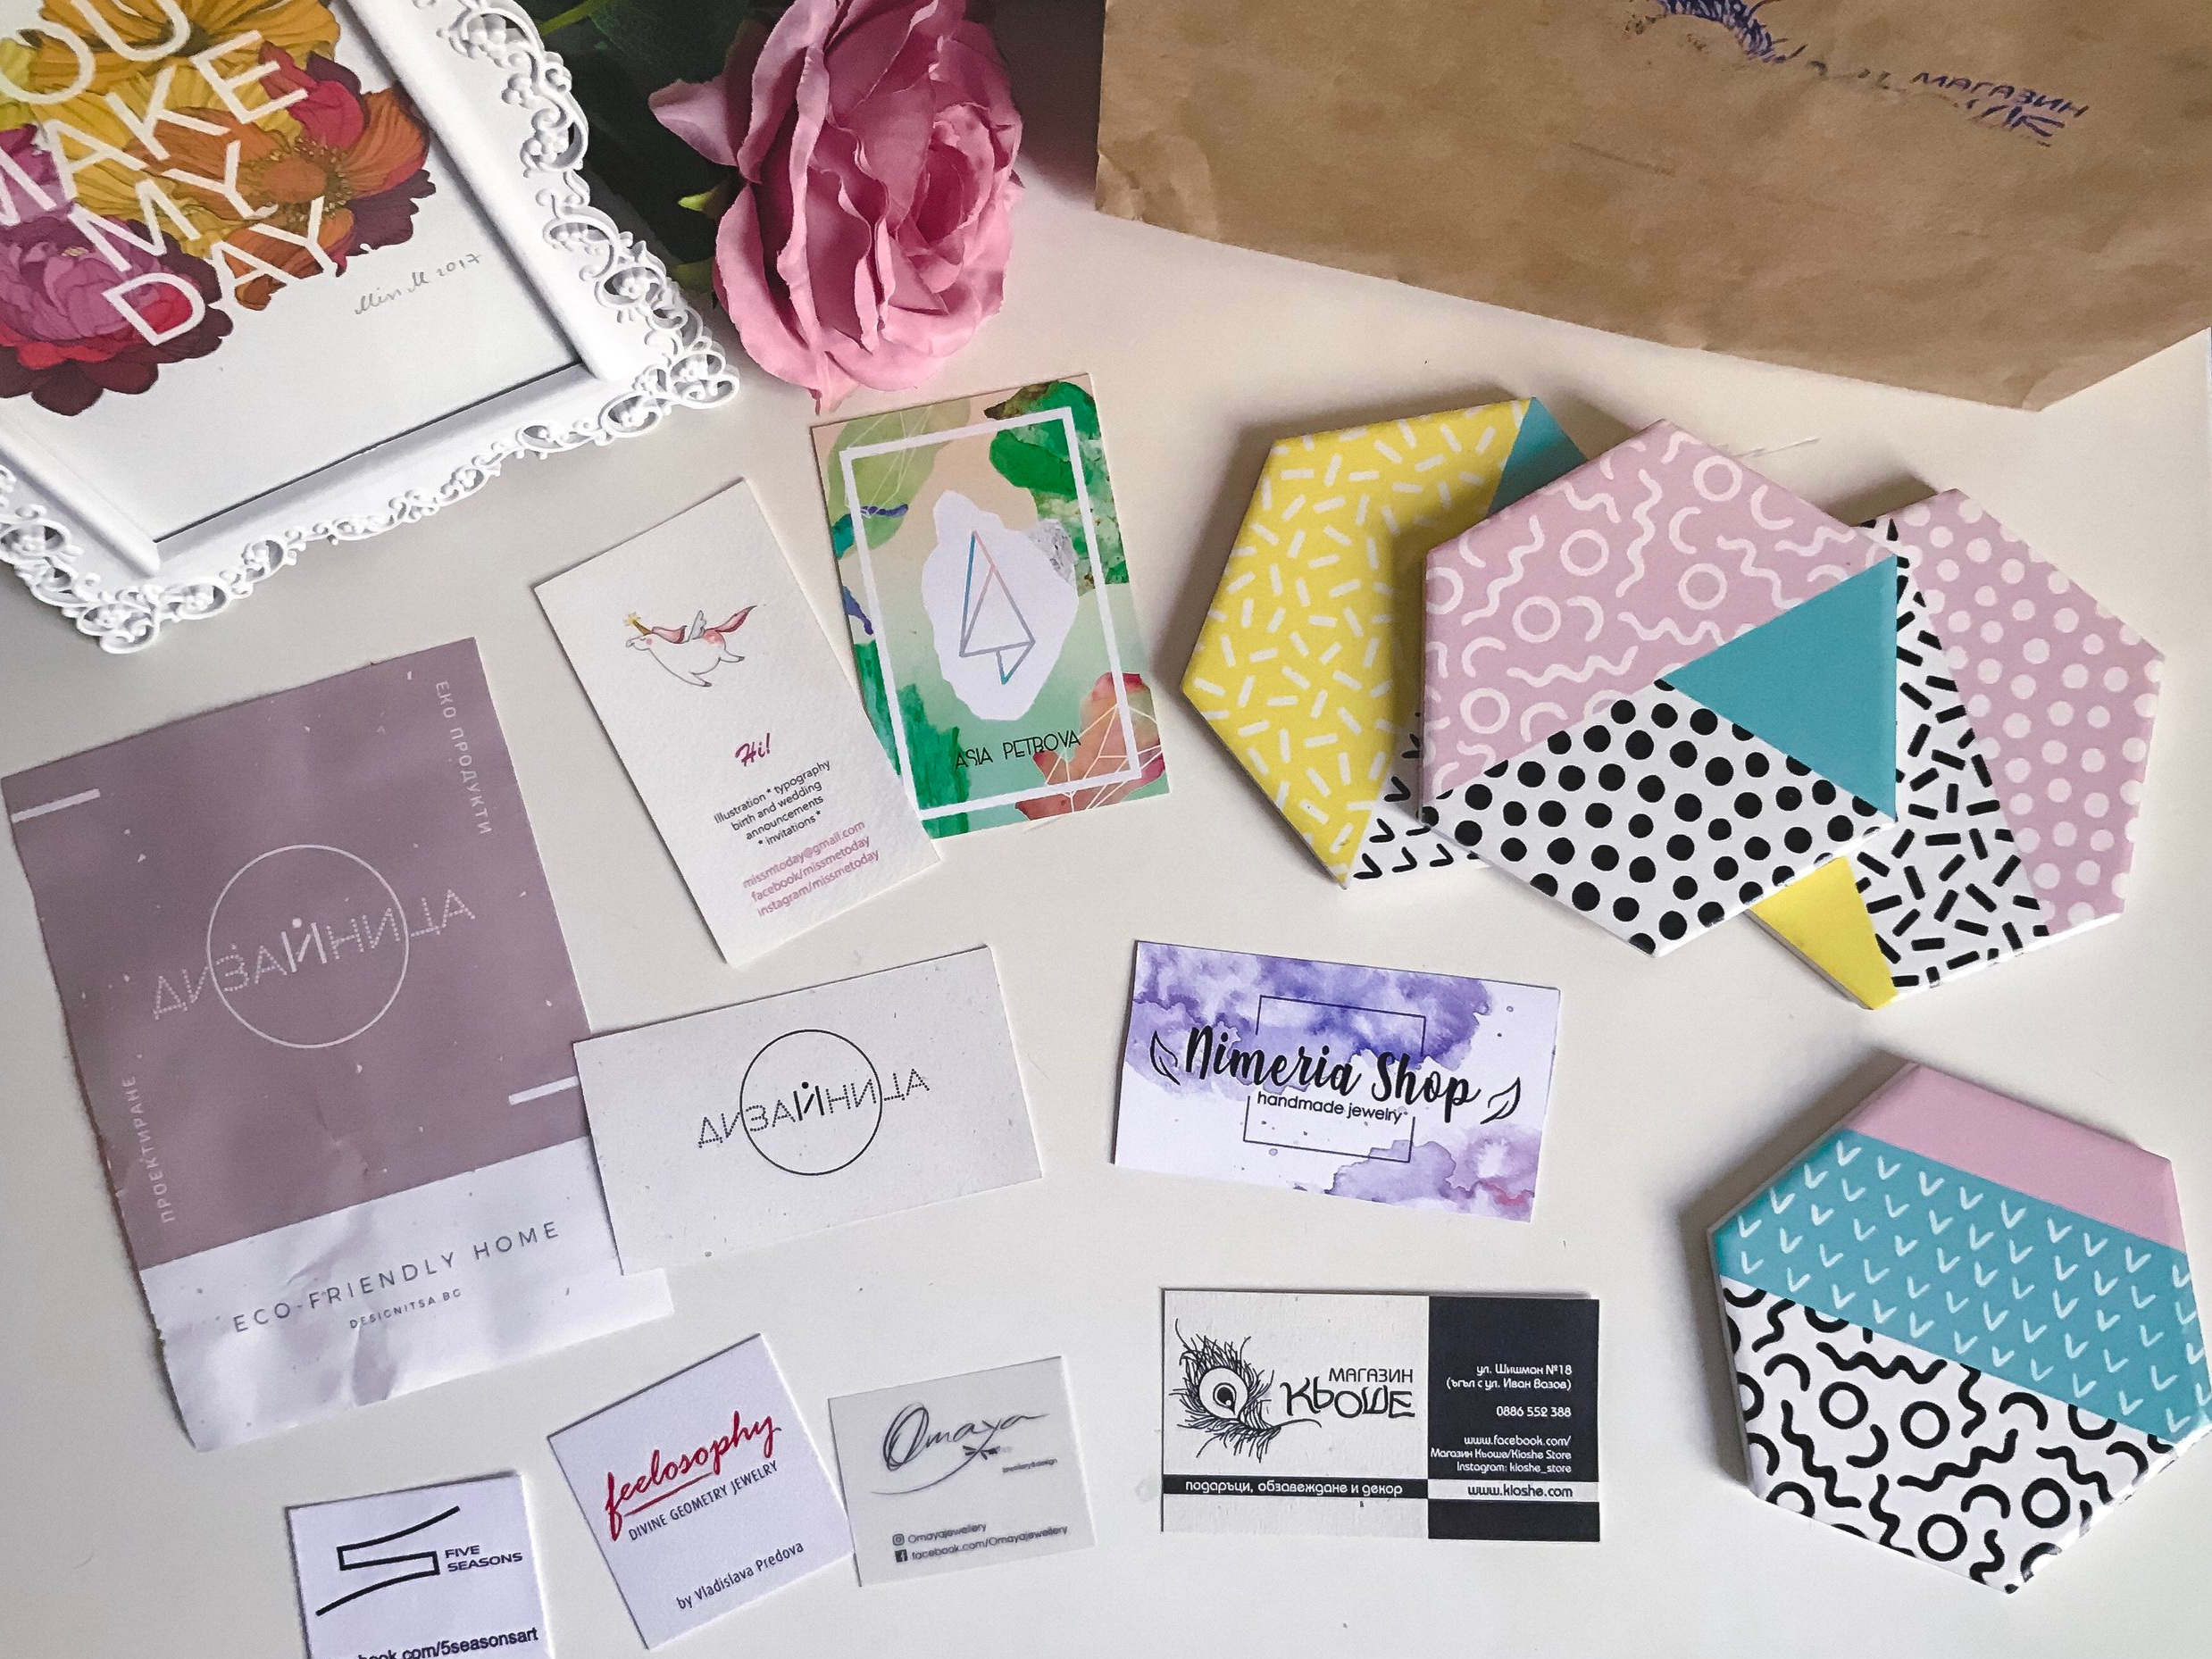 art-handmade-business-cards-flatlay